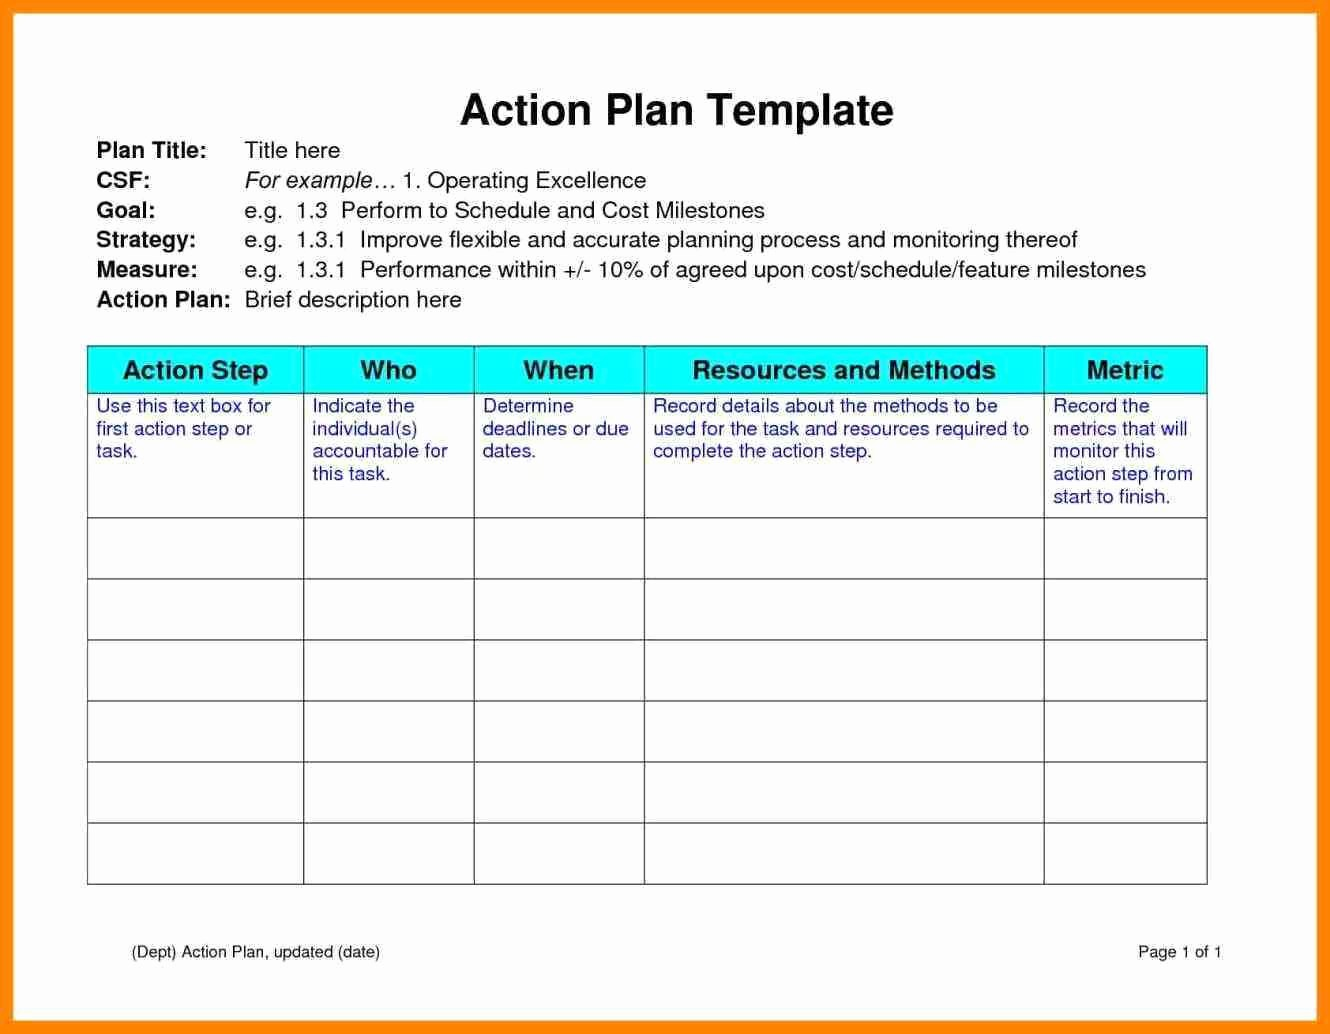 Milestone Plan Template In Excel Fresh Plan Action and Milestones Template Image Collections